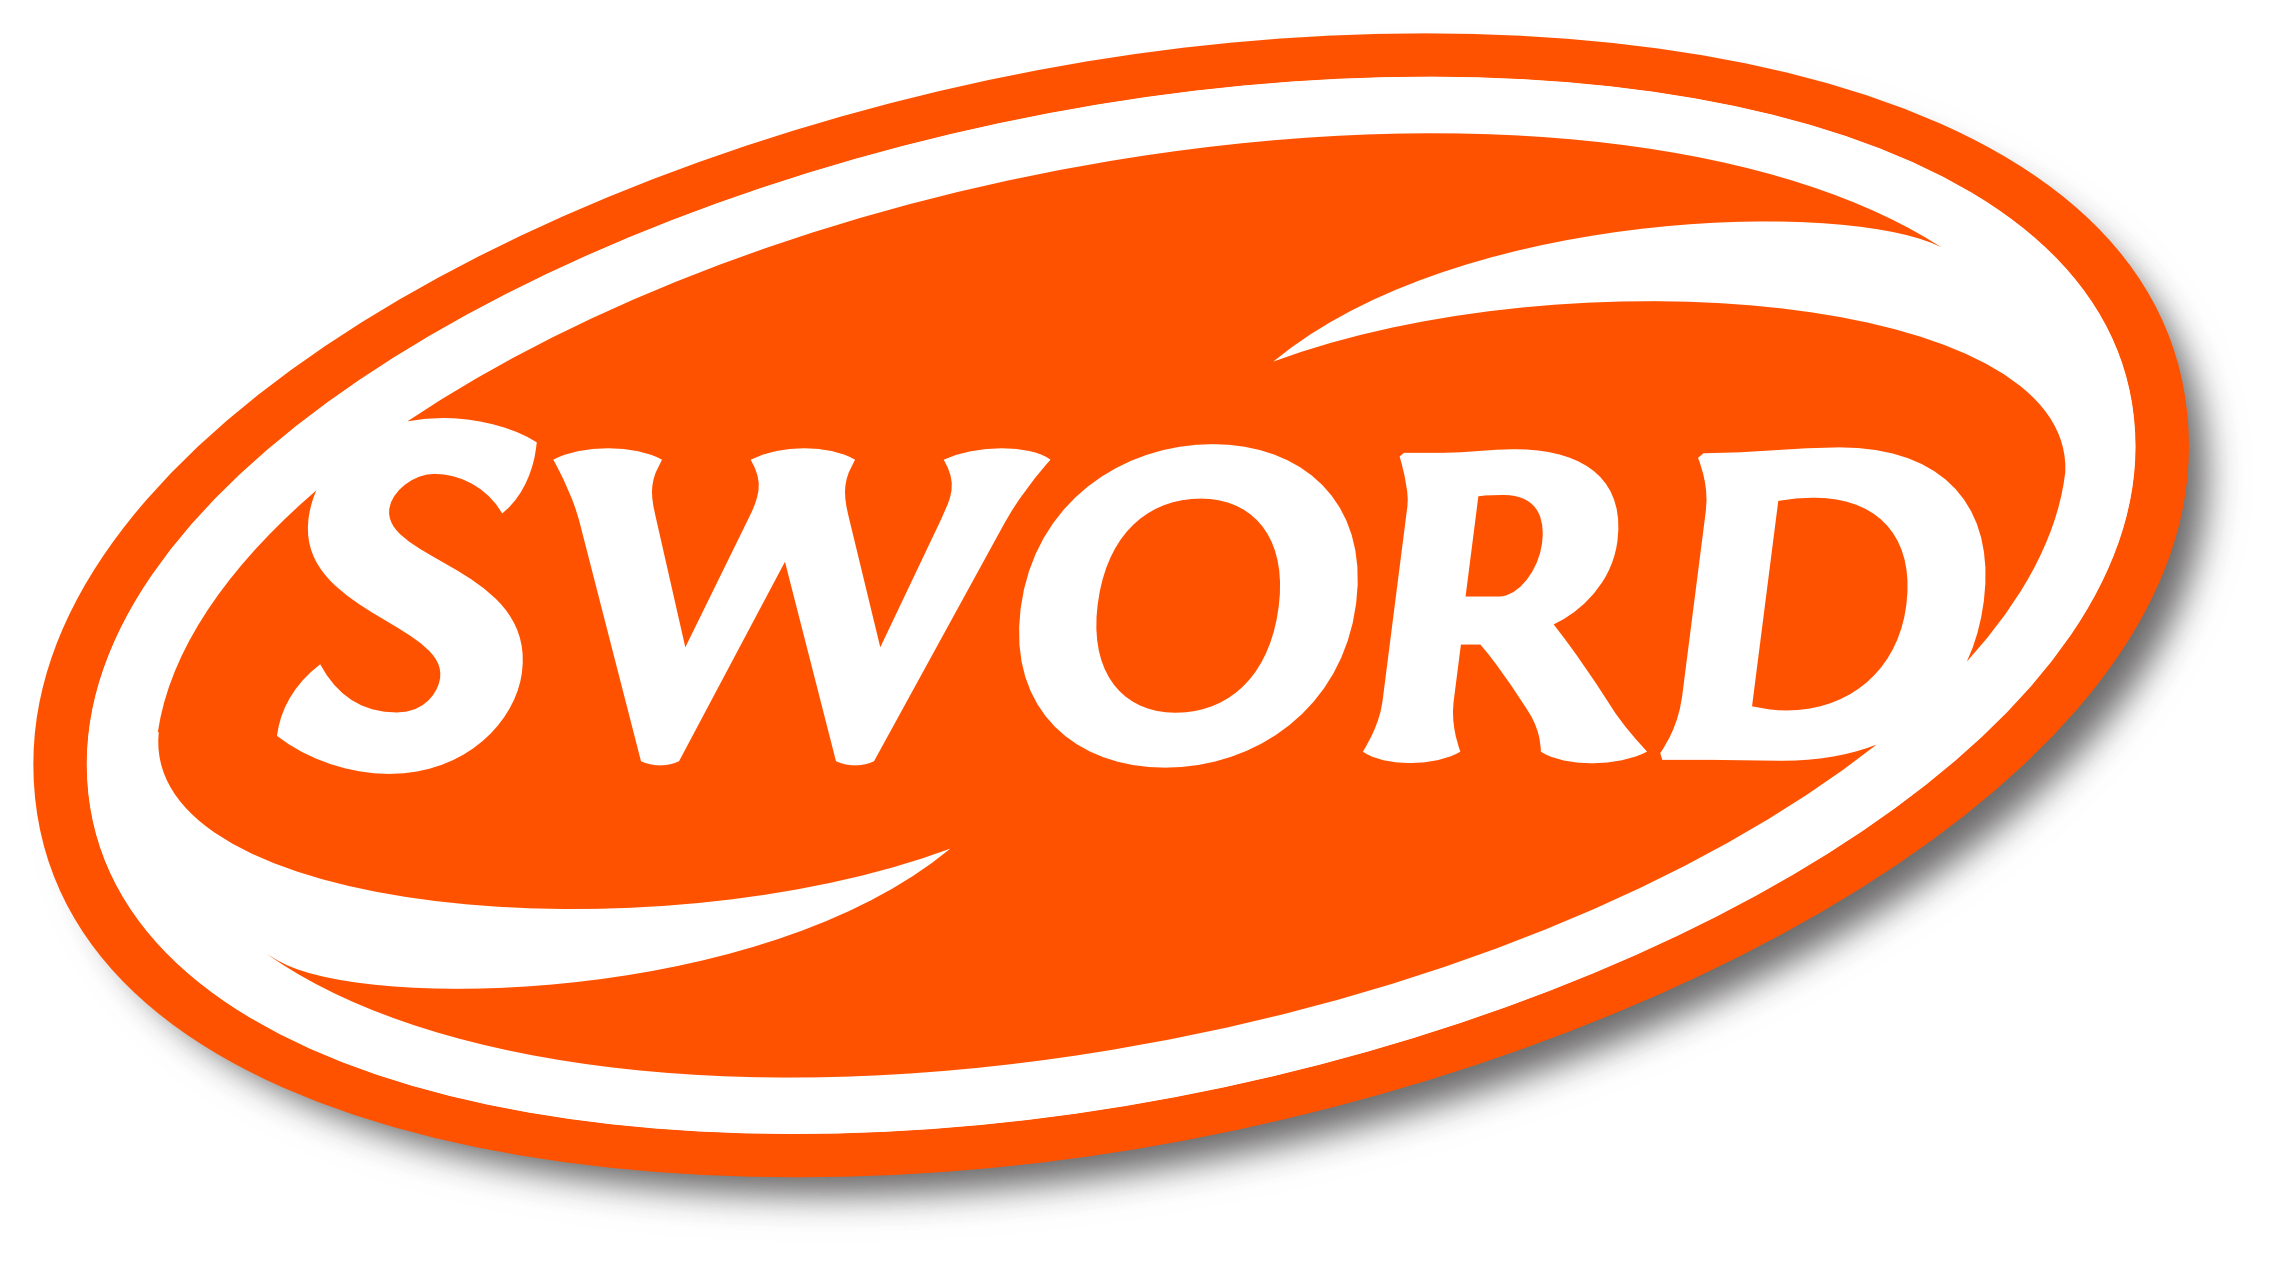 William Sword Limited